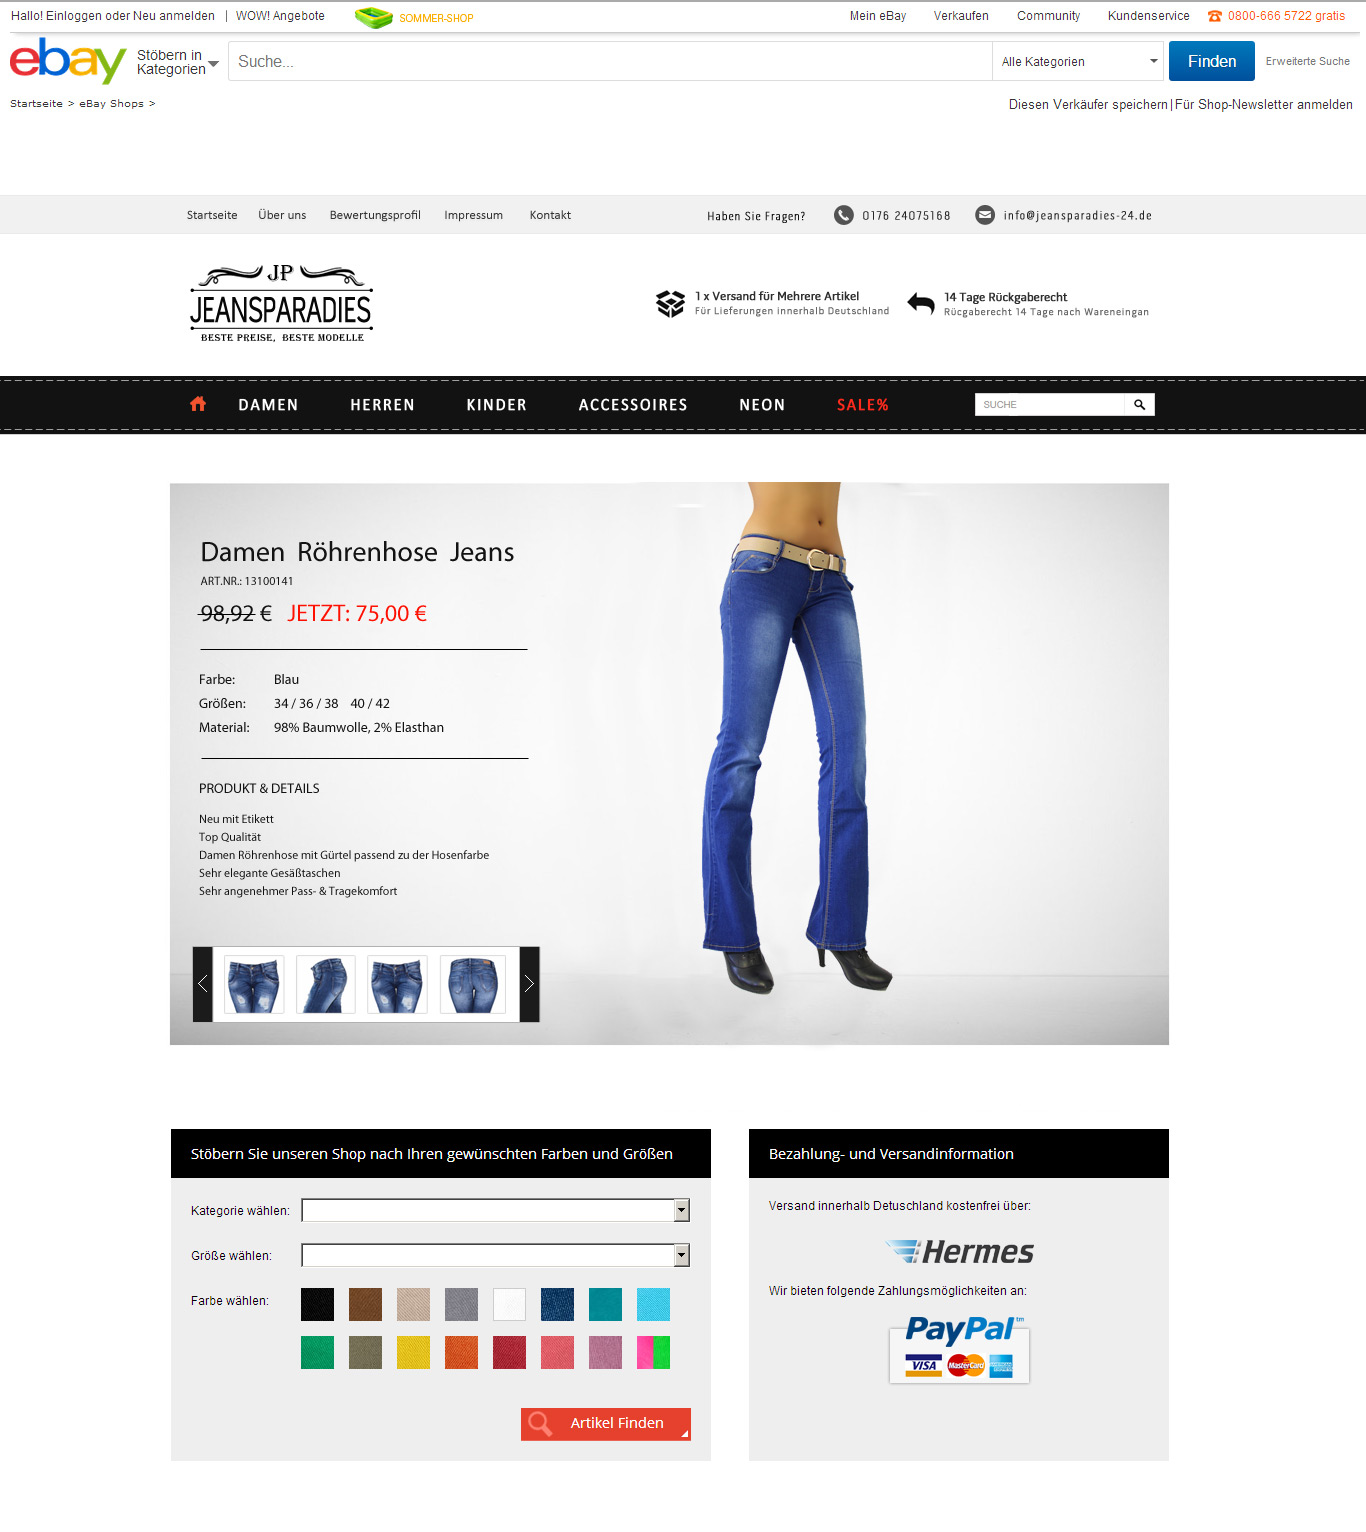 jeans-paradies-cms-ebay-shop